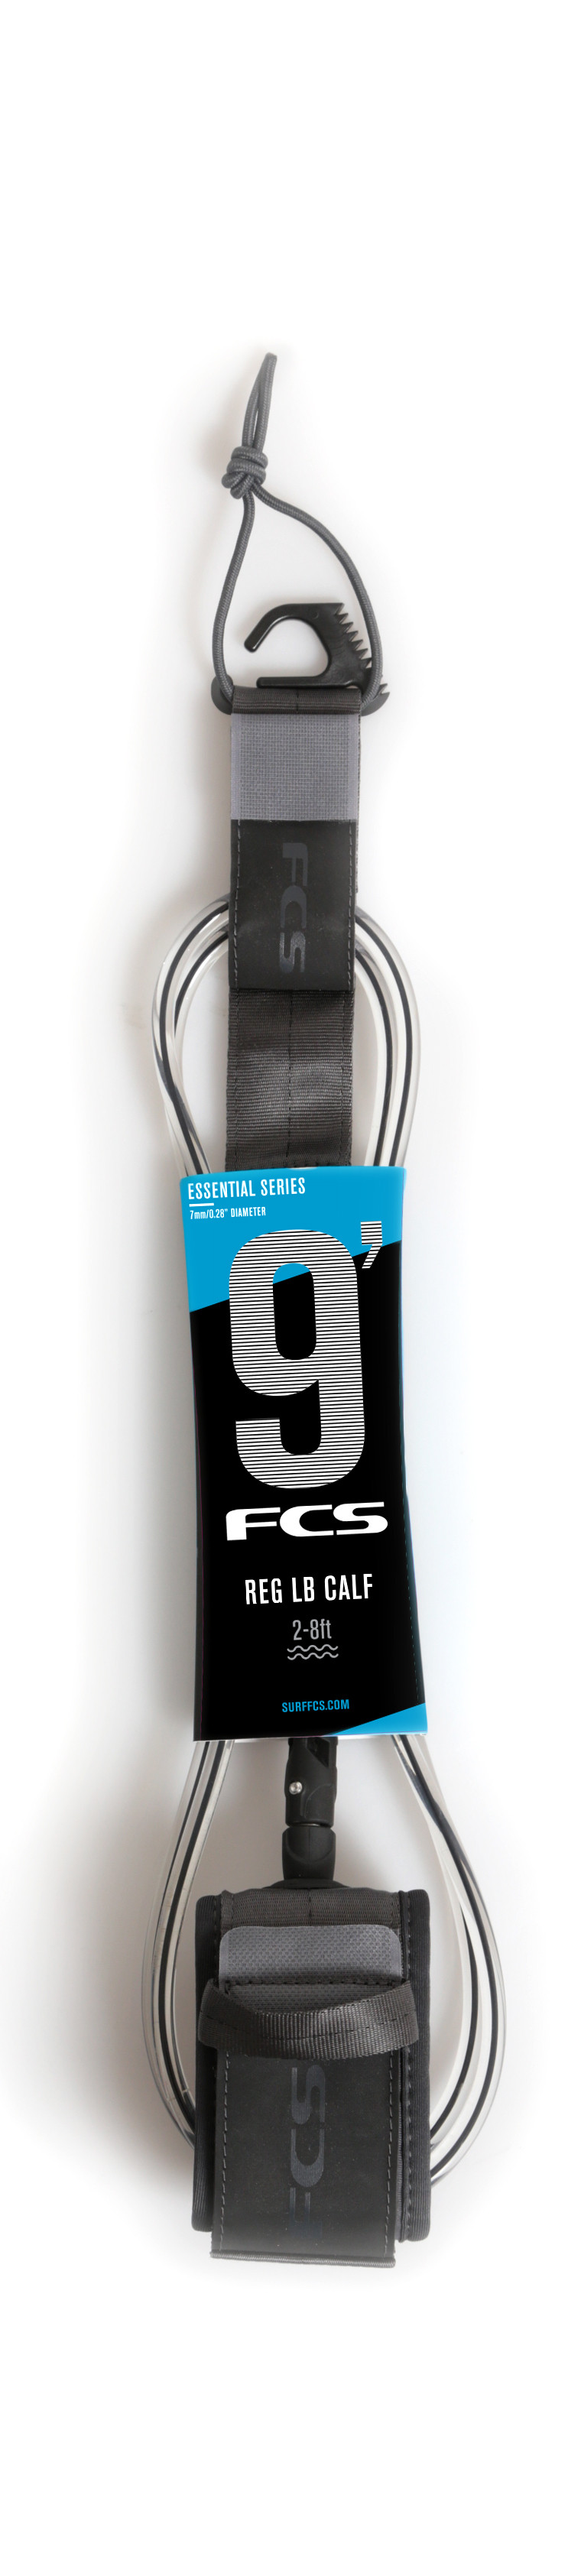 INVENTO FCS 9' REGULAR CALF' ESSENTIAL